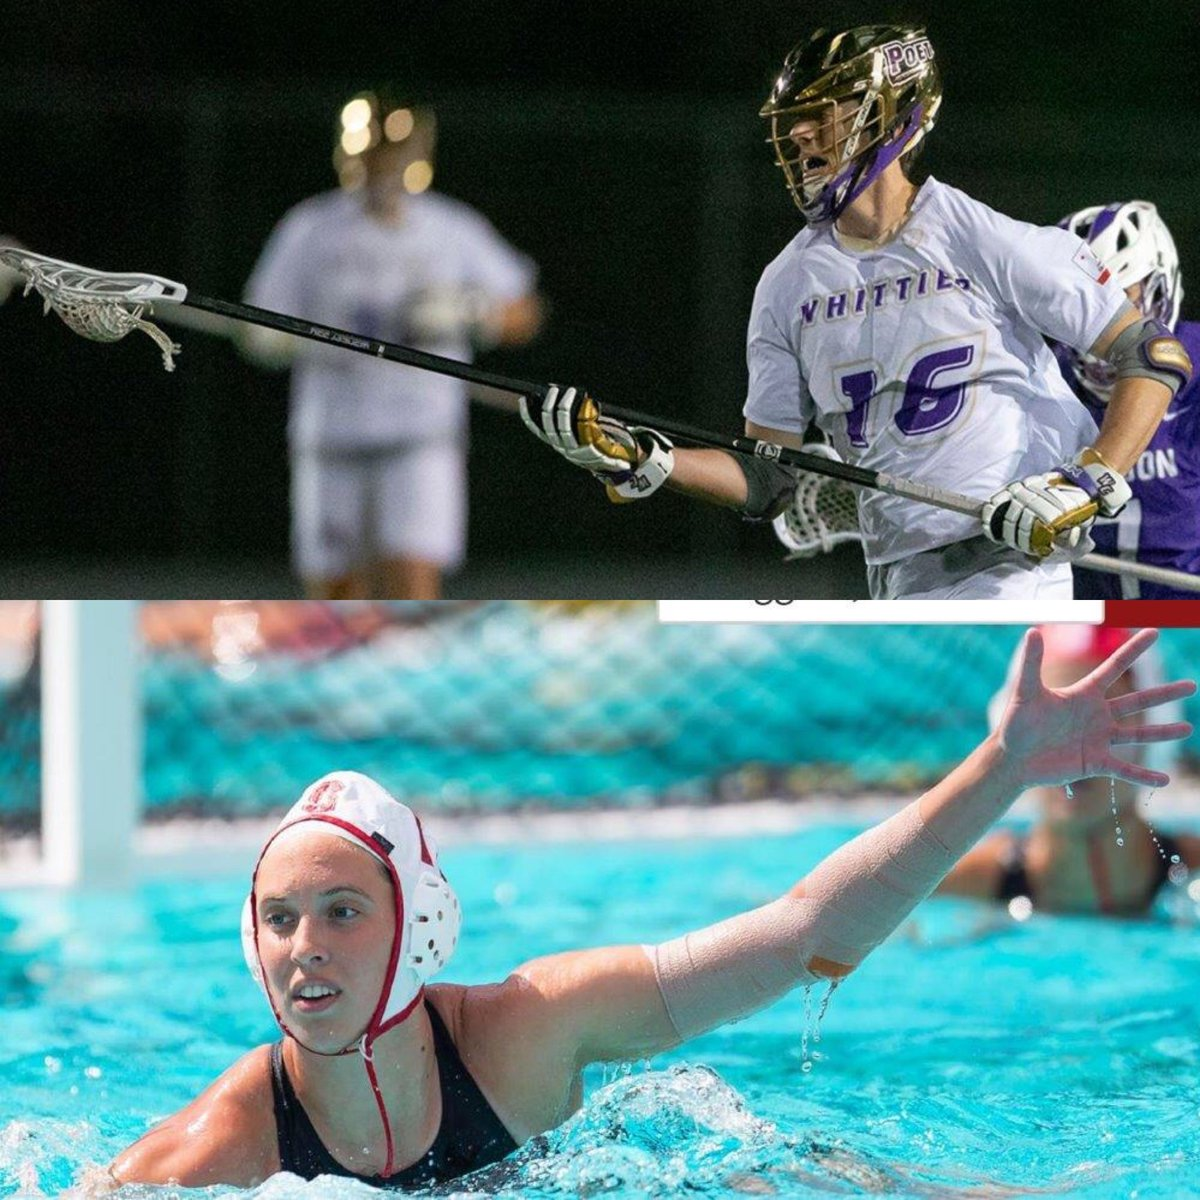 🐺TUALATIN 🥍🤽♀️ ALUMNI 🐺 Very rare to have 2⃣ siblings pursue their passion for Athletics at the Collegiate Level. Madison Berggren (15) - Water Polo Stanford University. Jacob Berggren (17) - Lacrosse Whittier College.